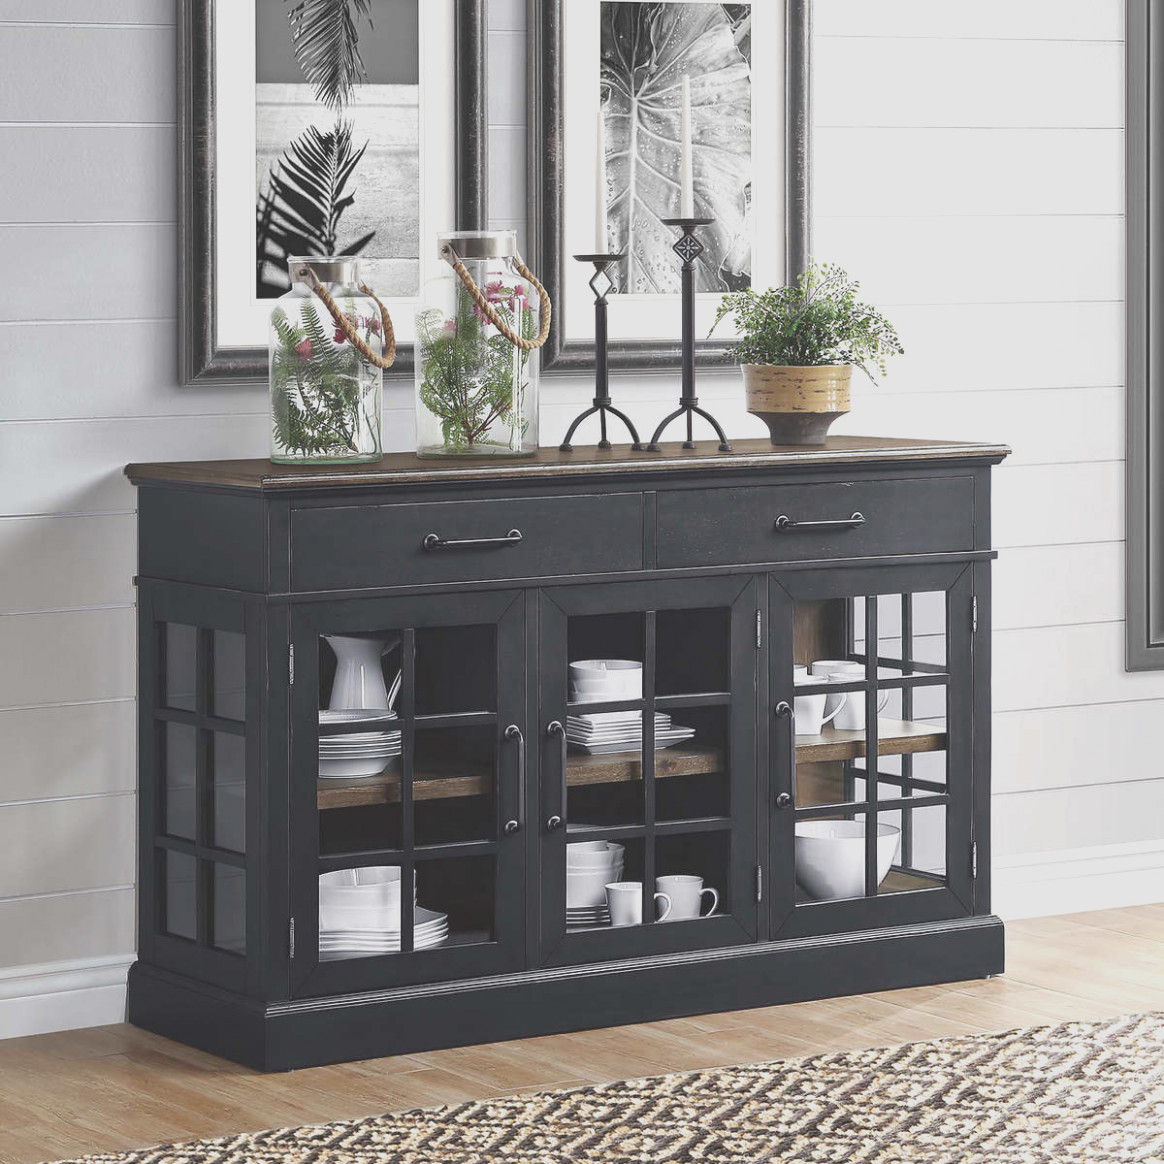 1 Inch Accent Cabinet